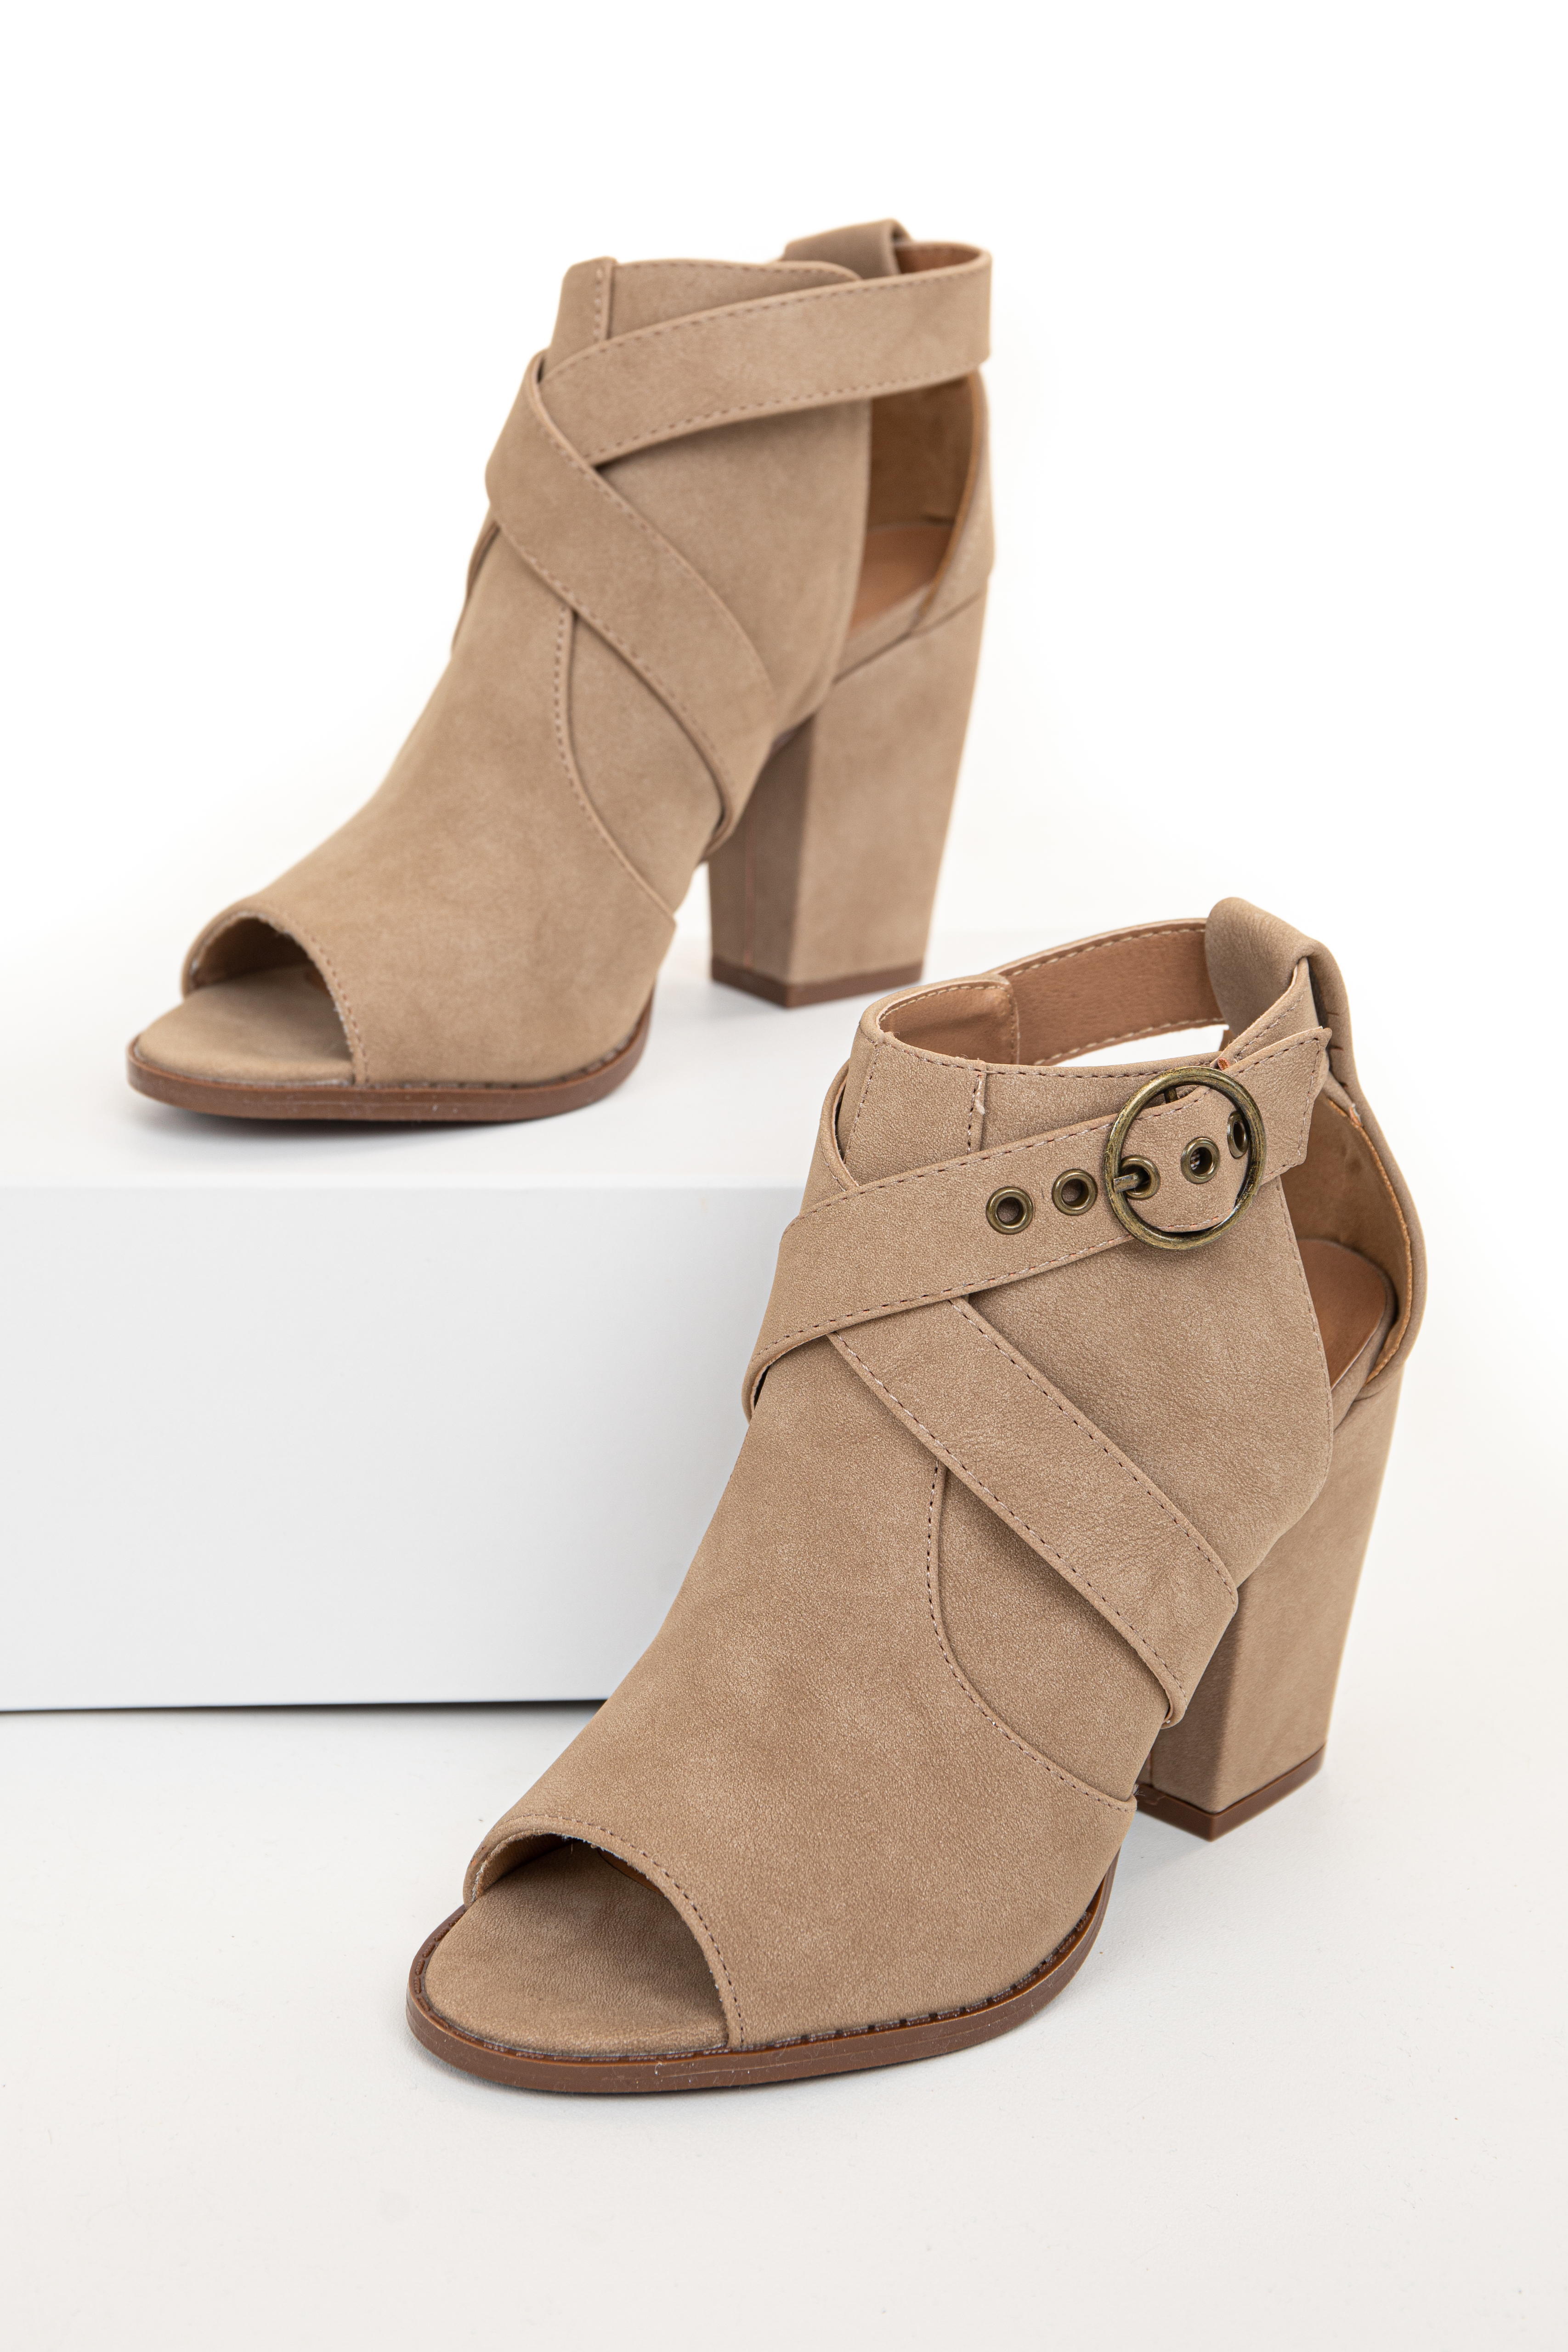 Taupe Faux Suede Open Toed Heels with Side Buckle Strap